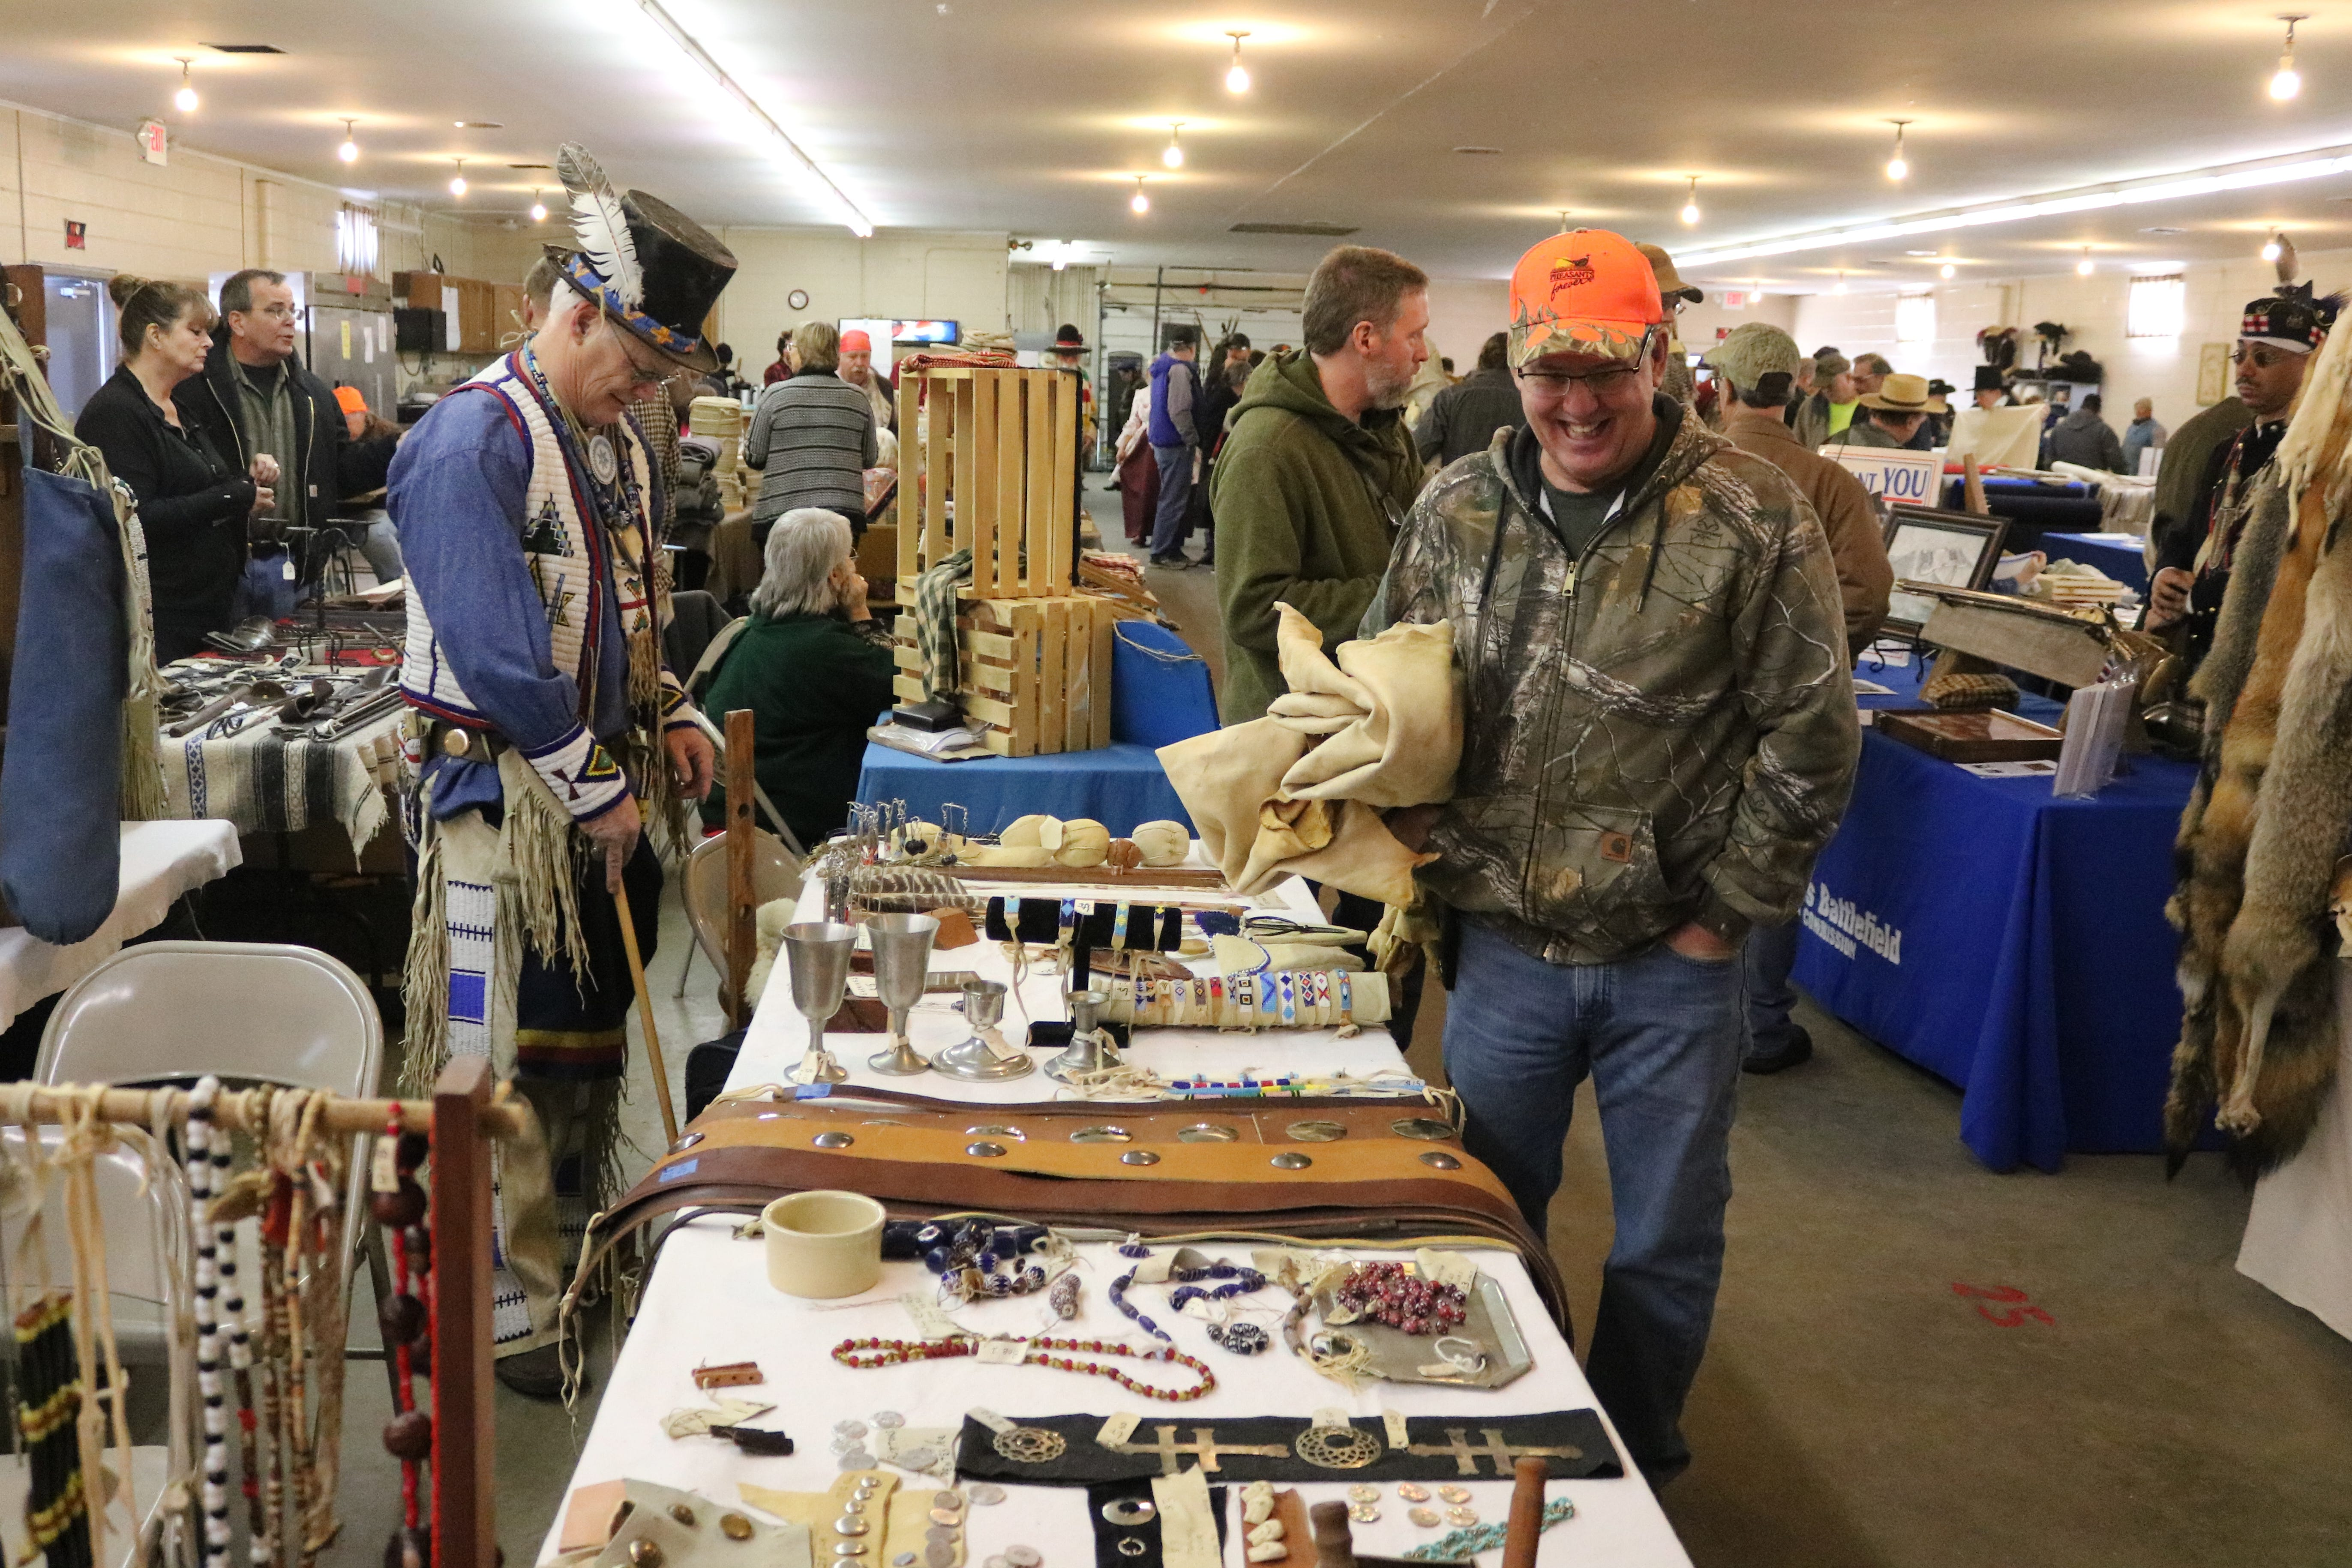 Historical reenactment enthusiasts and artisans gathered in Fremont for the 29th annual Living History Trade Fair at the Sandusky County Fairgrounds this past weekend.